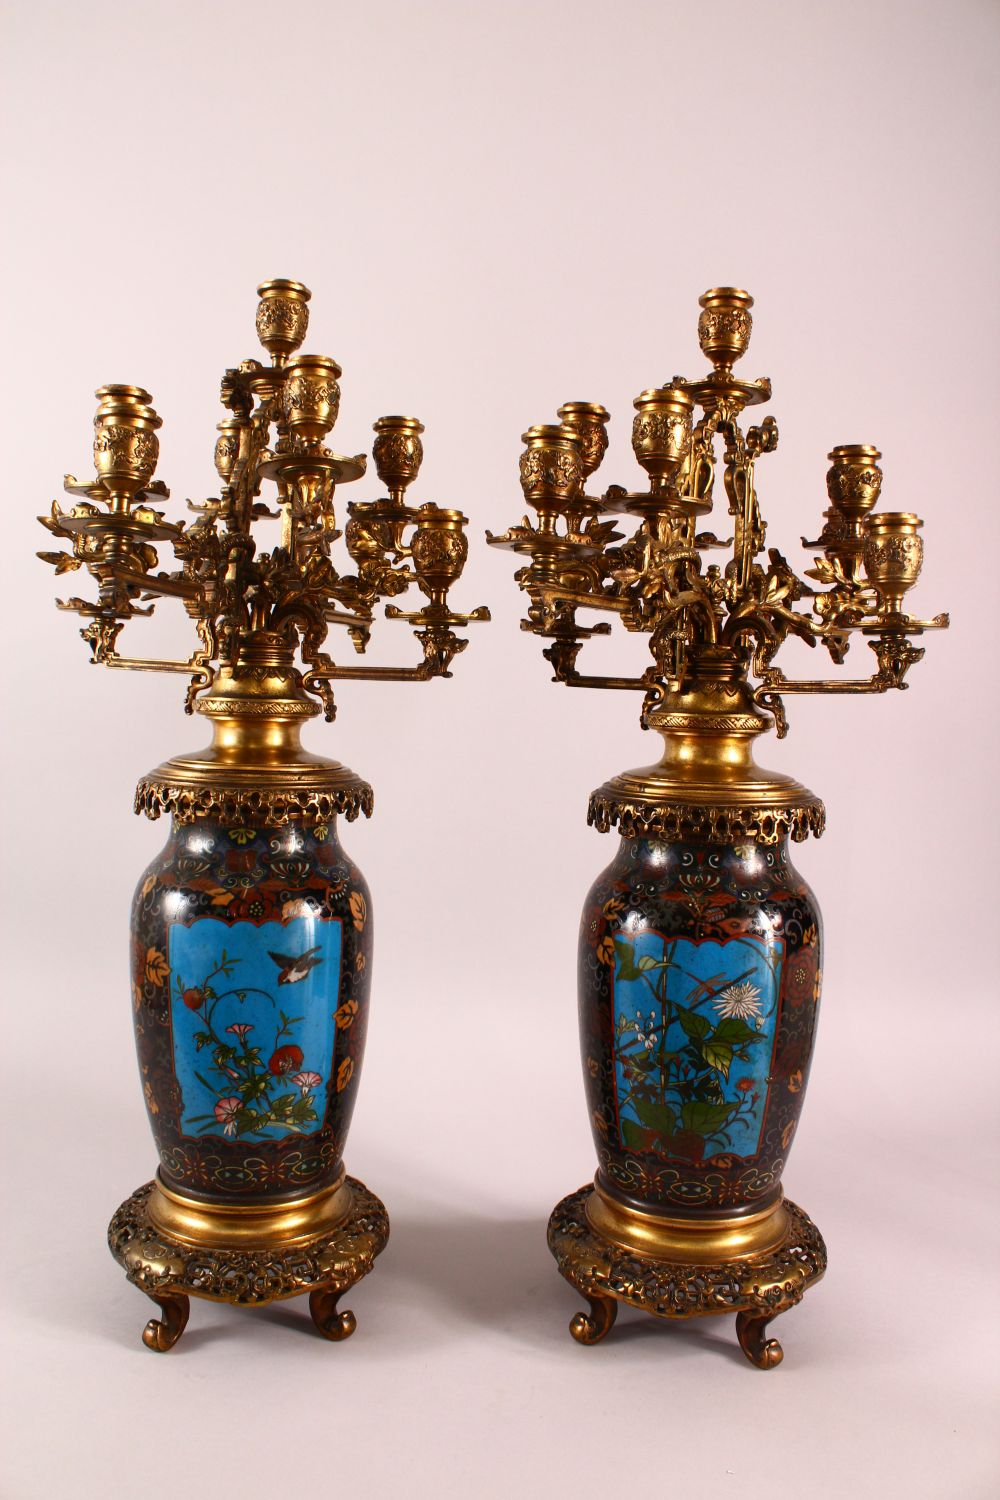 A VERY GOOD PAIR OF JAPANESE CLOISONNE AND ORMOLU NINE LIGHT CANDELABRA, the candle branches - Image 7 of 12